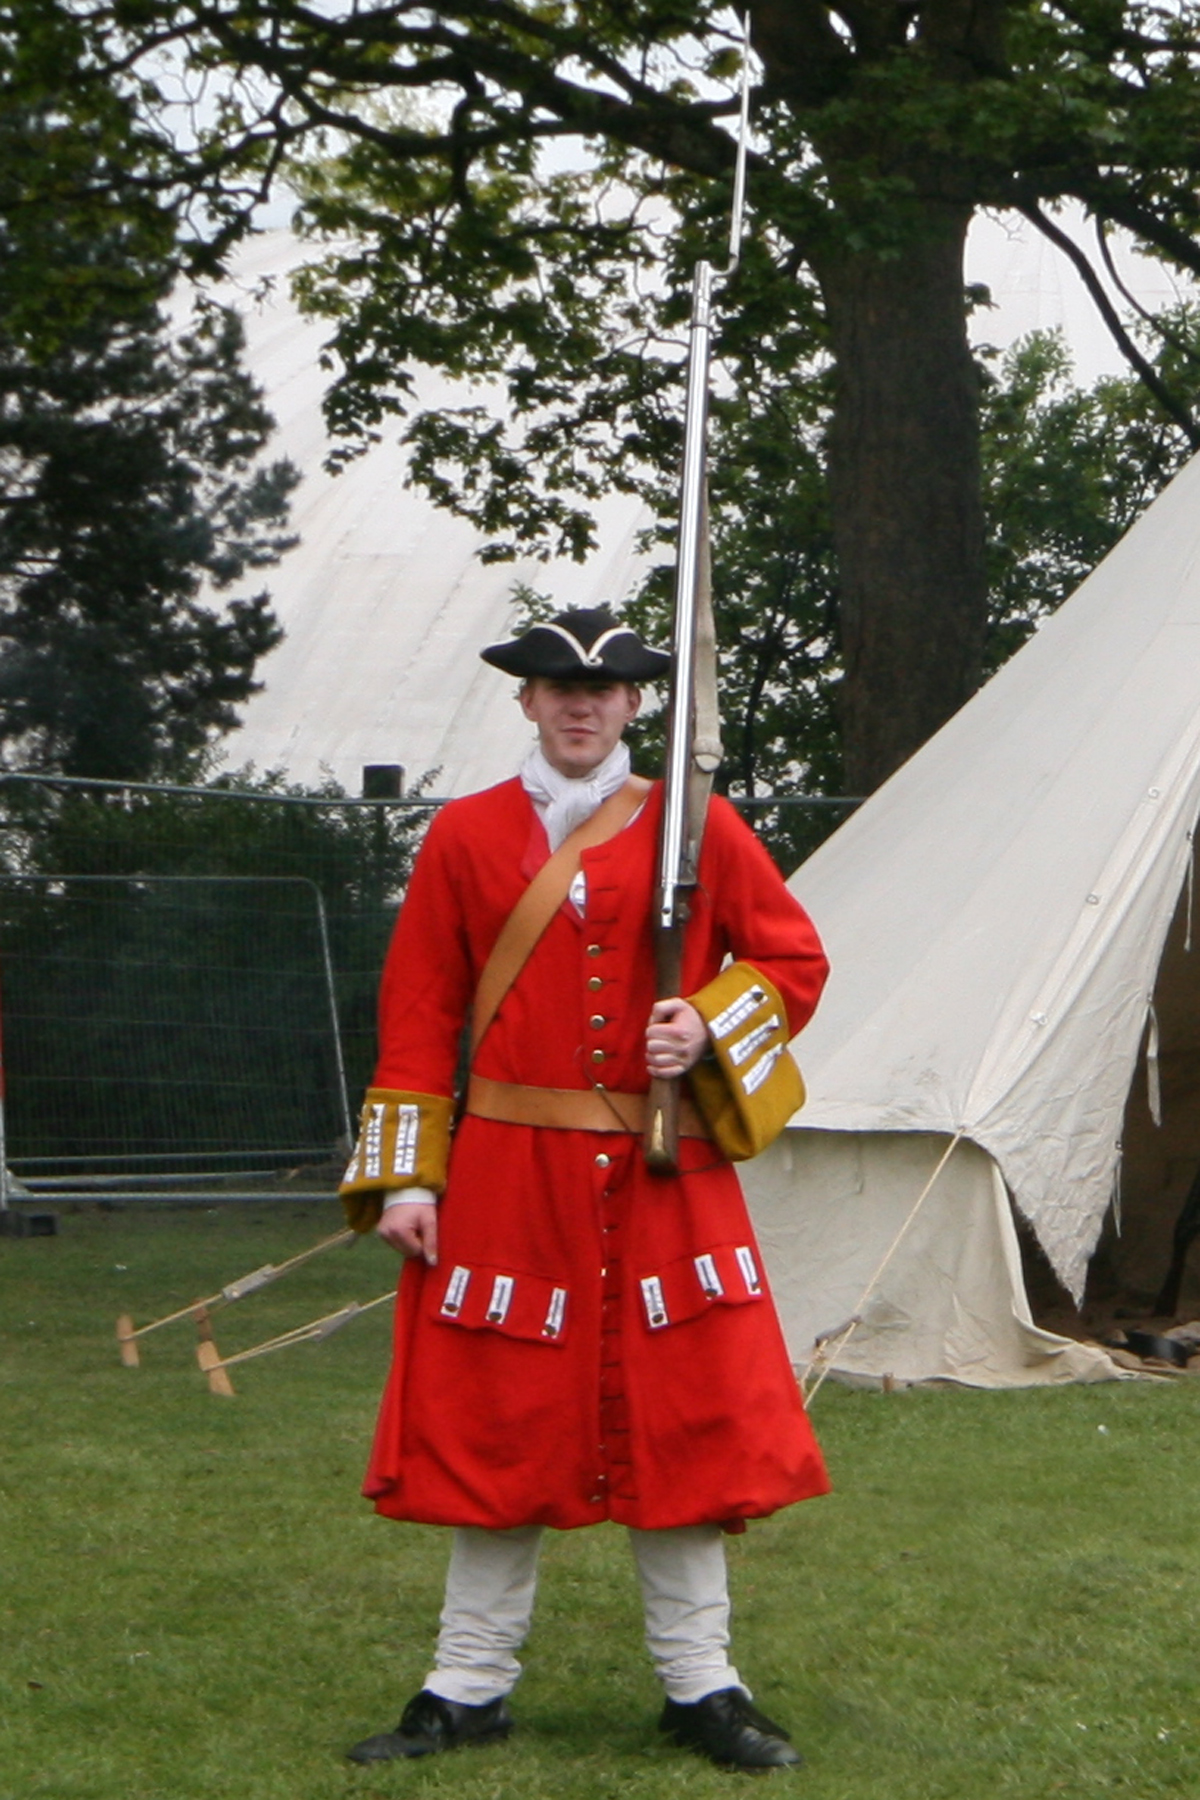 A member of Veritas Vincit military re-enactment group in typical 1715 infantry uniform